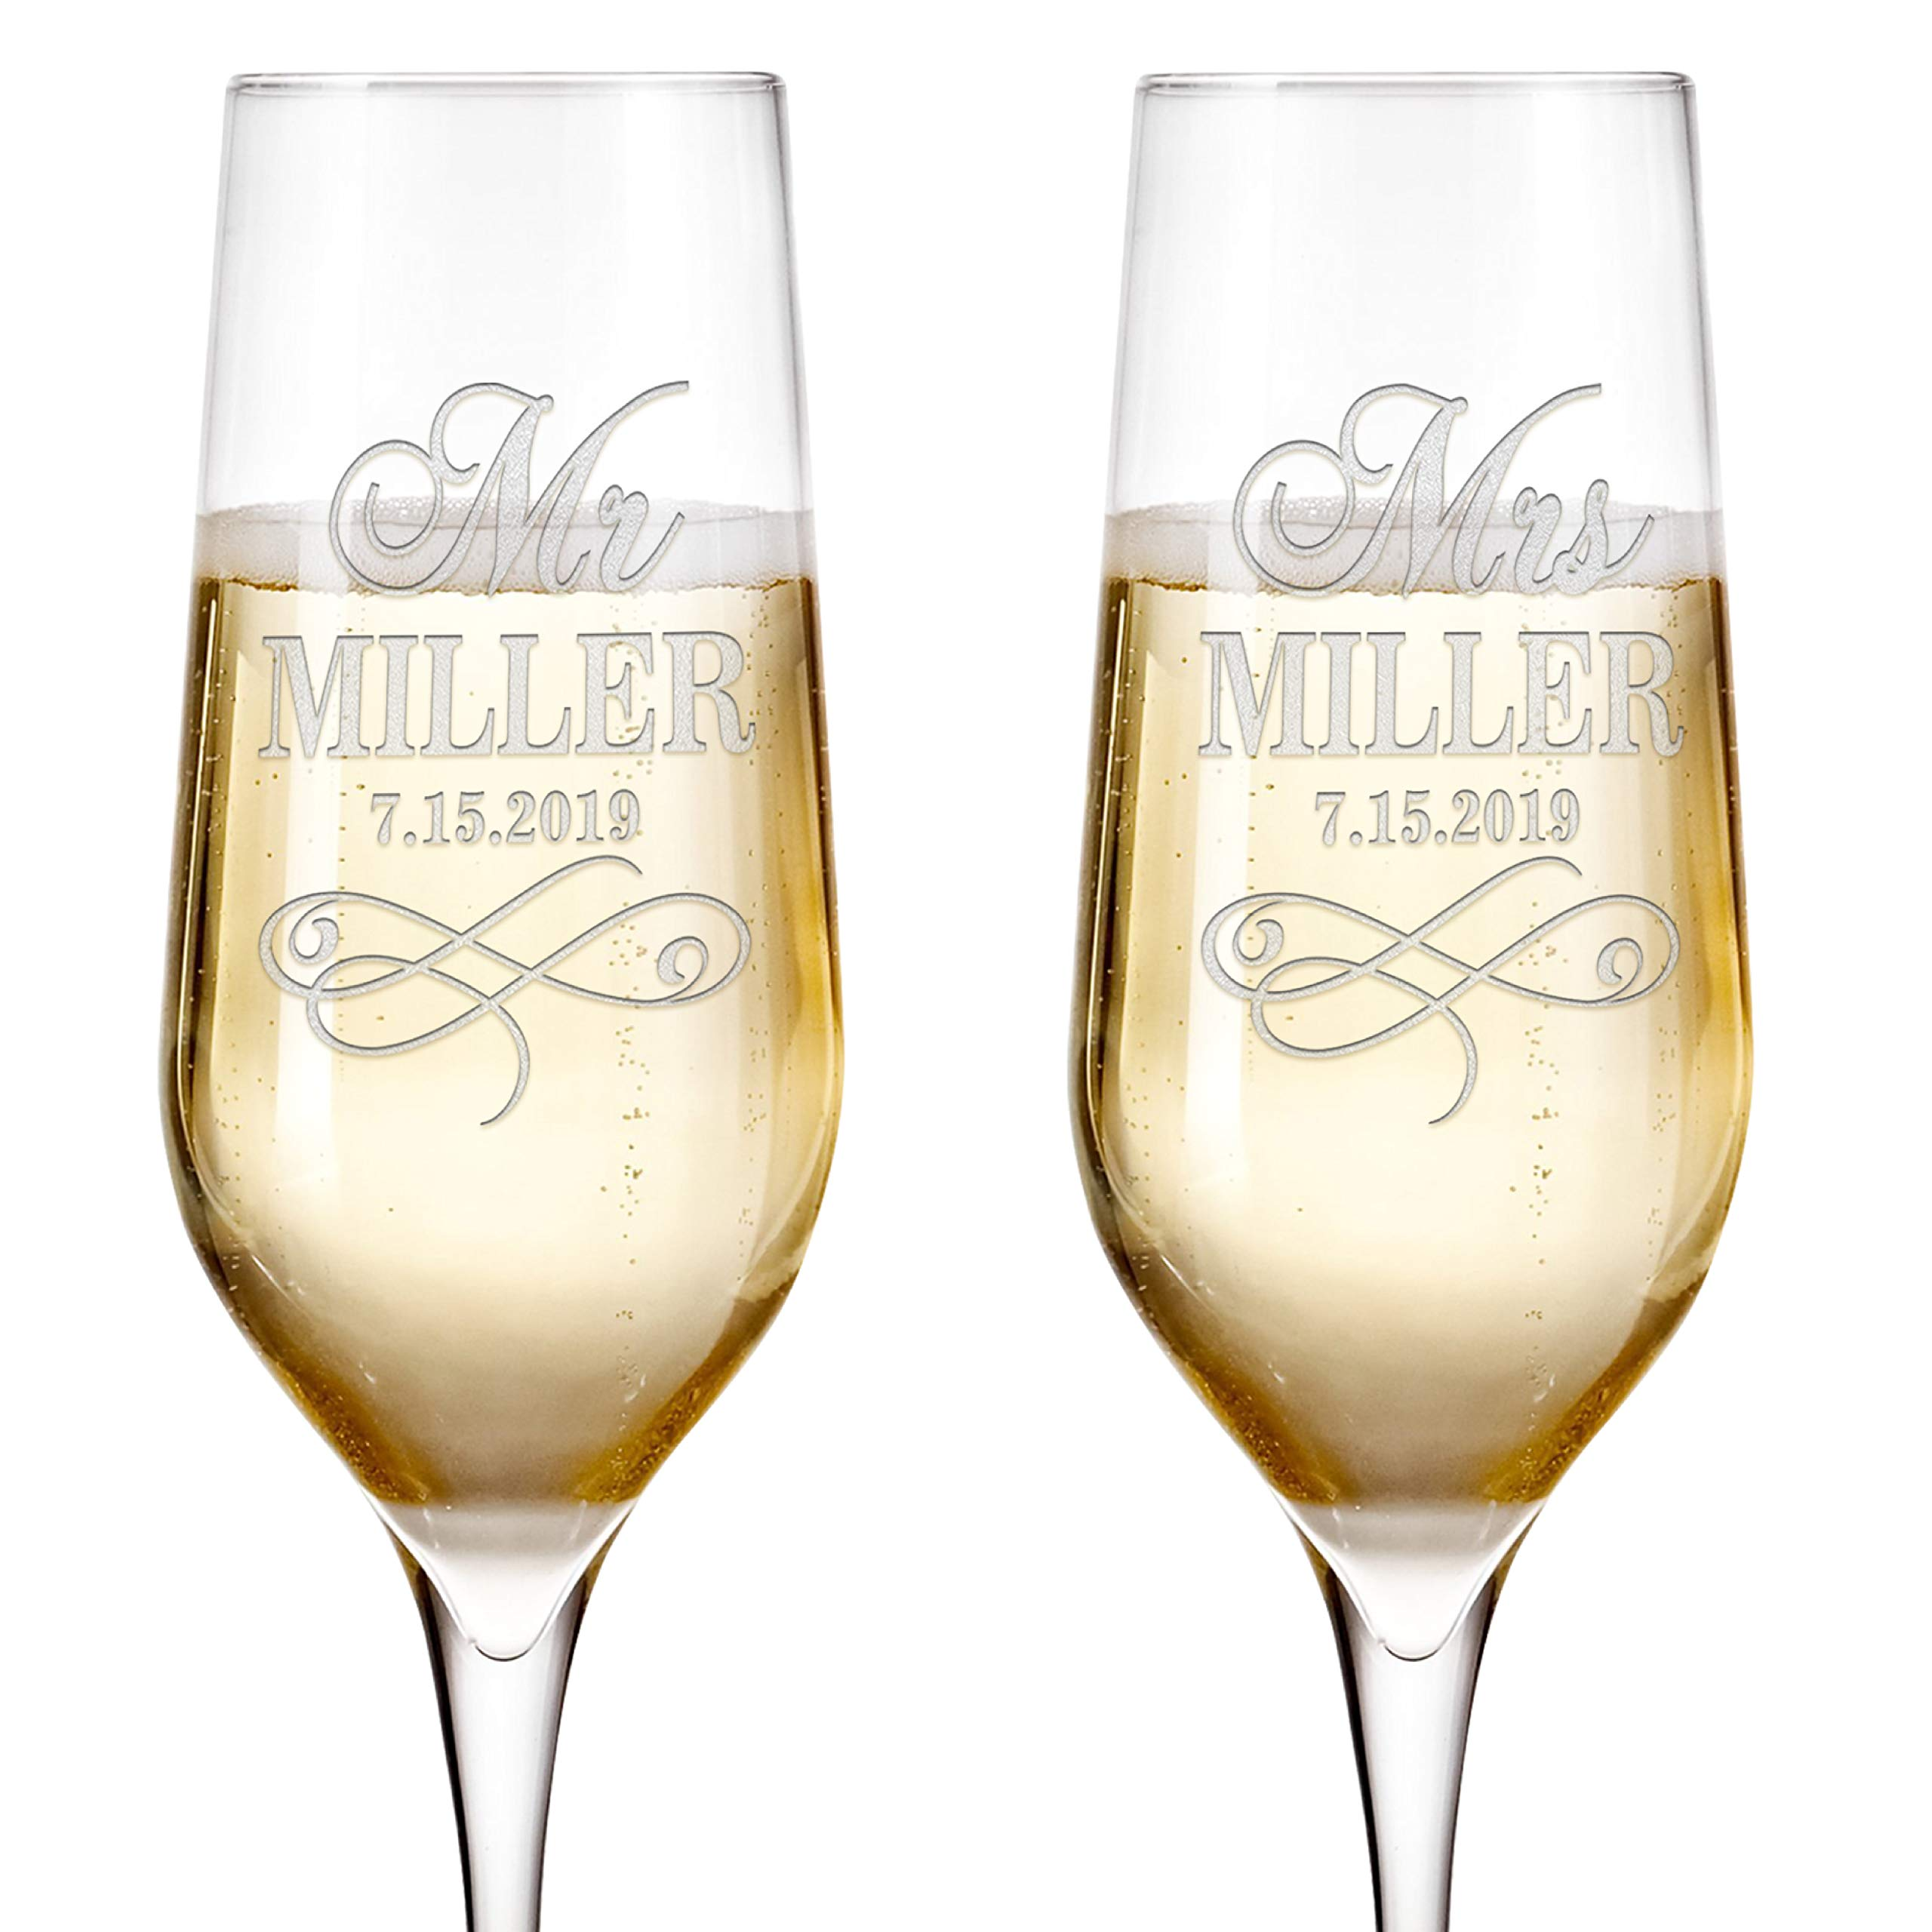 Set of 2, Personalized Mr Mrs Wedding Champagne Flutes - Bride and Groom Champagne Glasses w/ Last Name and Date, Custom Engraved Mr and Mrs Champagne Glass | Wedding Toasting Glasses #3 by United Craft Supplies